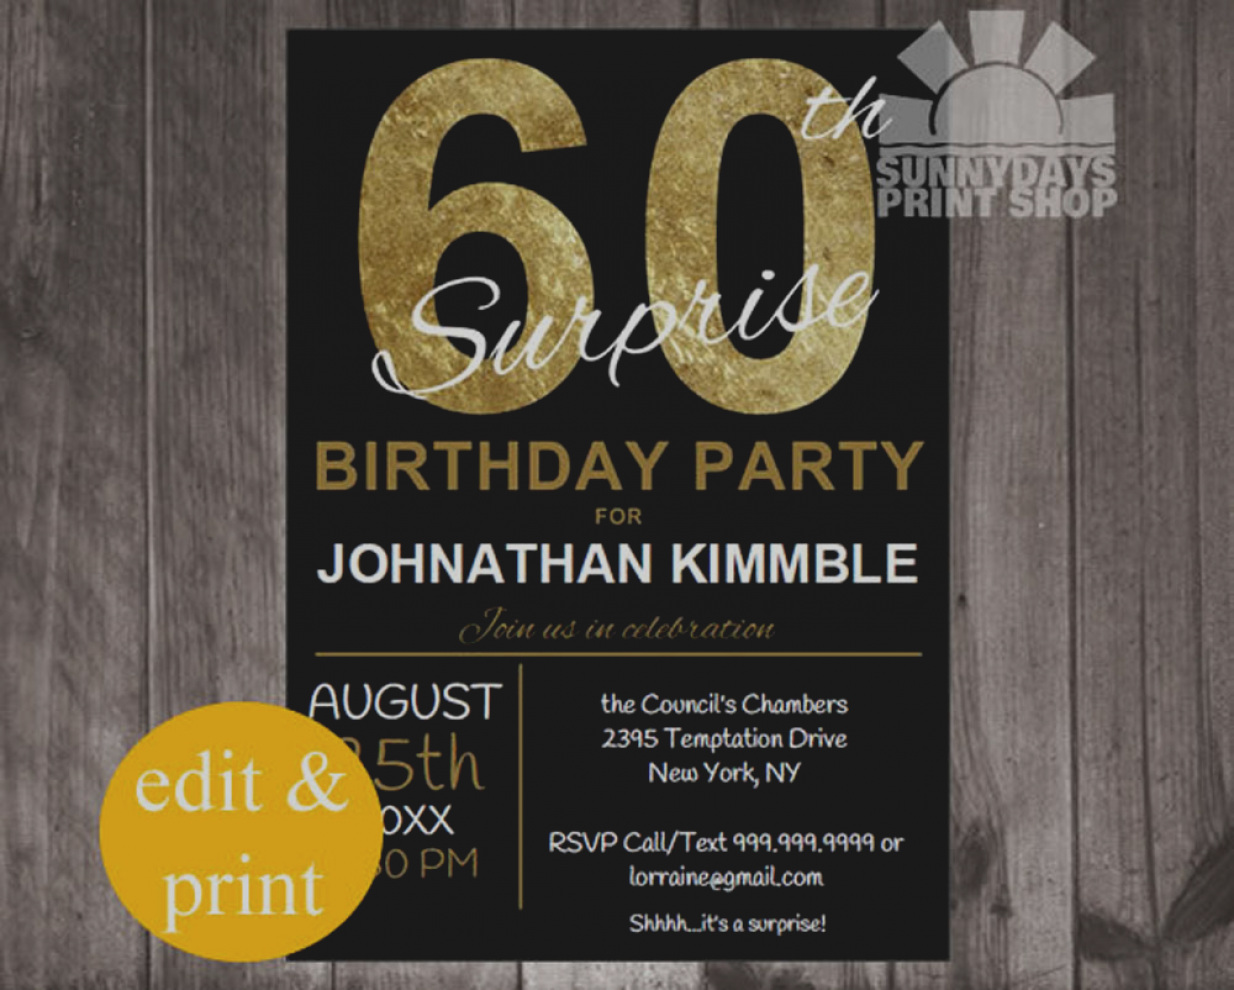 60th birthday invitation card templates free download ; inspirational-of-60th-birthday-party-invitation-20-ideas-invitations-card-templates